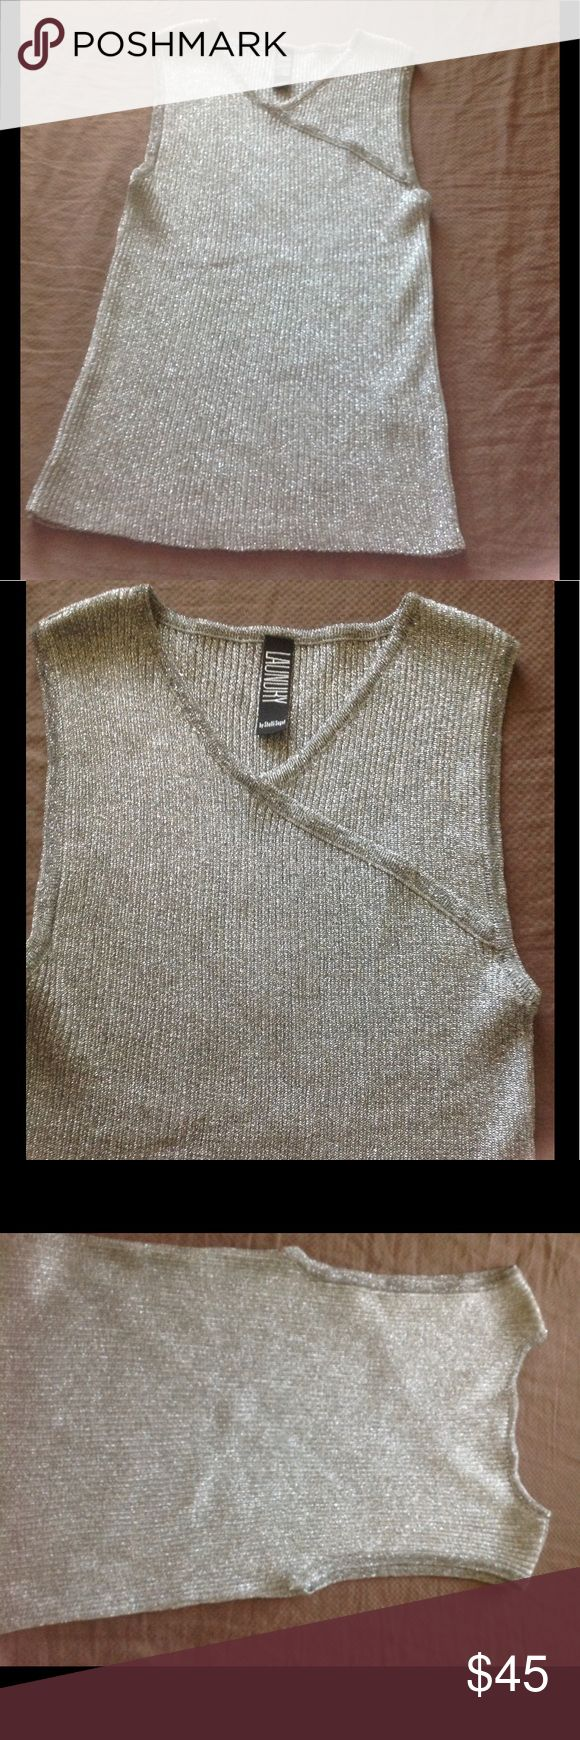 Stunning Silver Laundry Blouse This is a beautiful stunning silver blouse by LAUNDRY I  purchased this top with a gorgeous skirt I have listed as well from Newman Marcus - Perfect outfit. You will love the cut/style of this Blouse! 👀👀👀have so much to list due to domestic violence and now being homeless. Please don't hesitate to make offer I have been given so much time for Storage before I lose everything. Some items will be sent away to consignment but very few. PLEASE LOOK AND SPREAD…